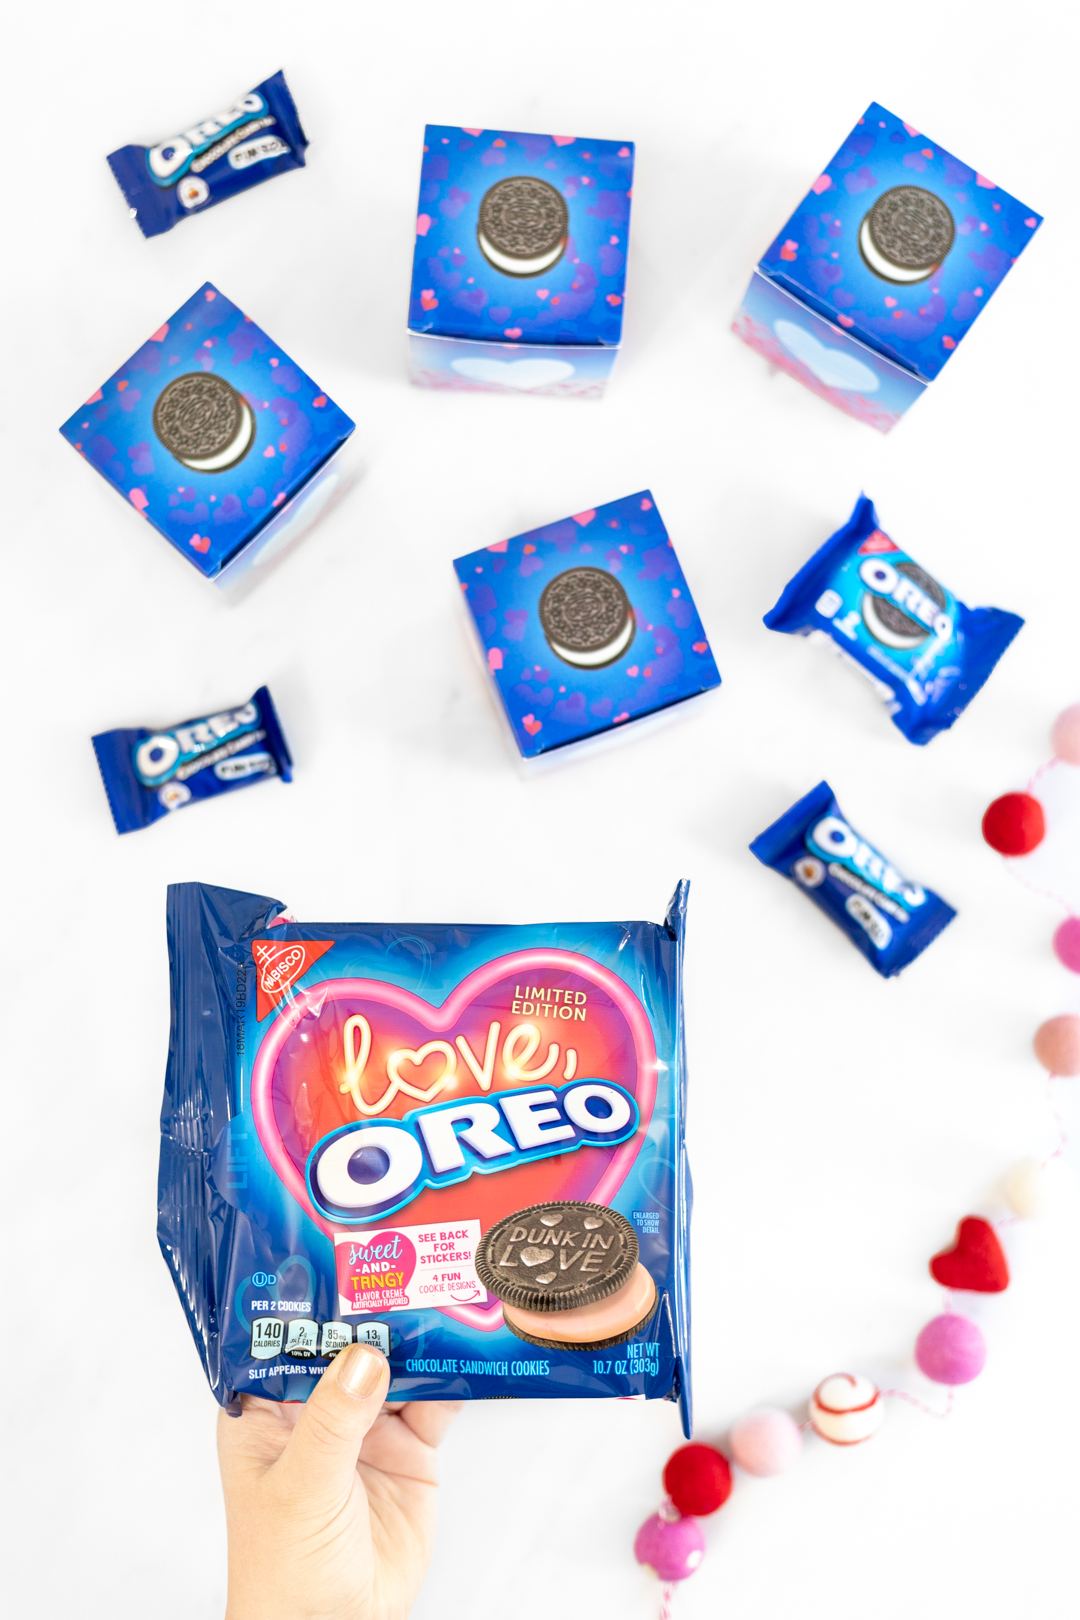 LIMITED EDITION Love OREO cookies with sweet and tangy flavored creme